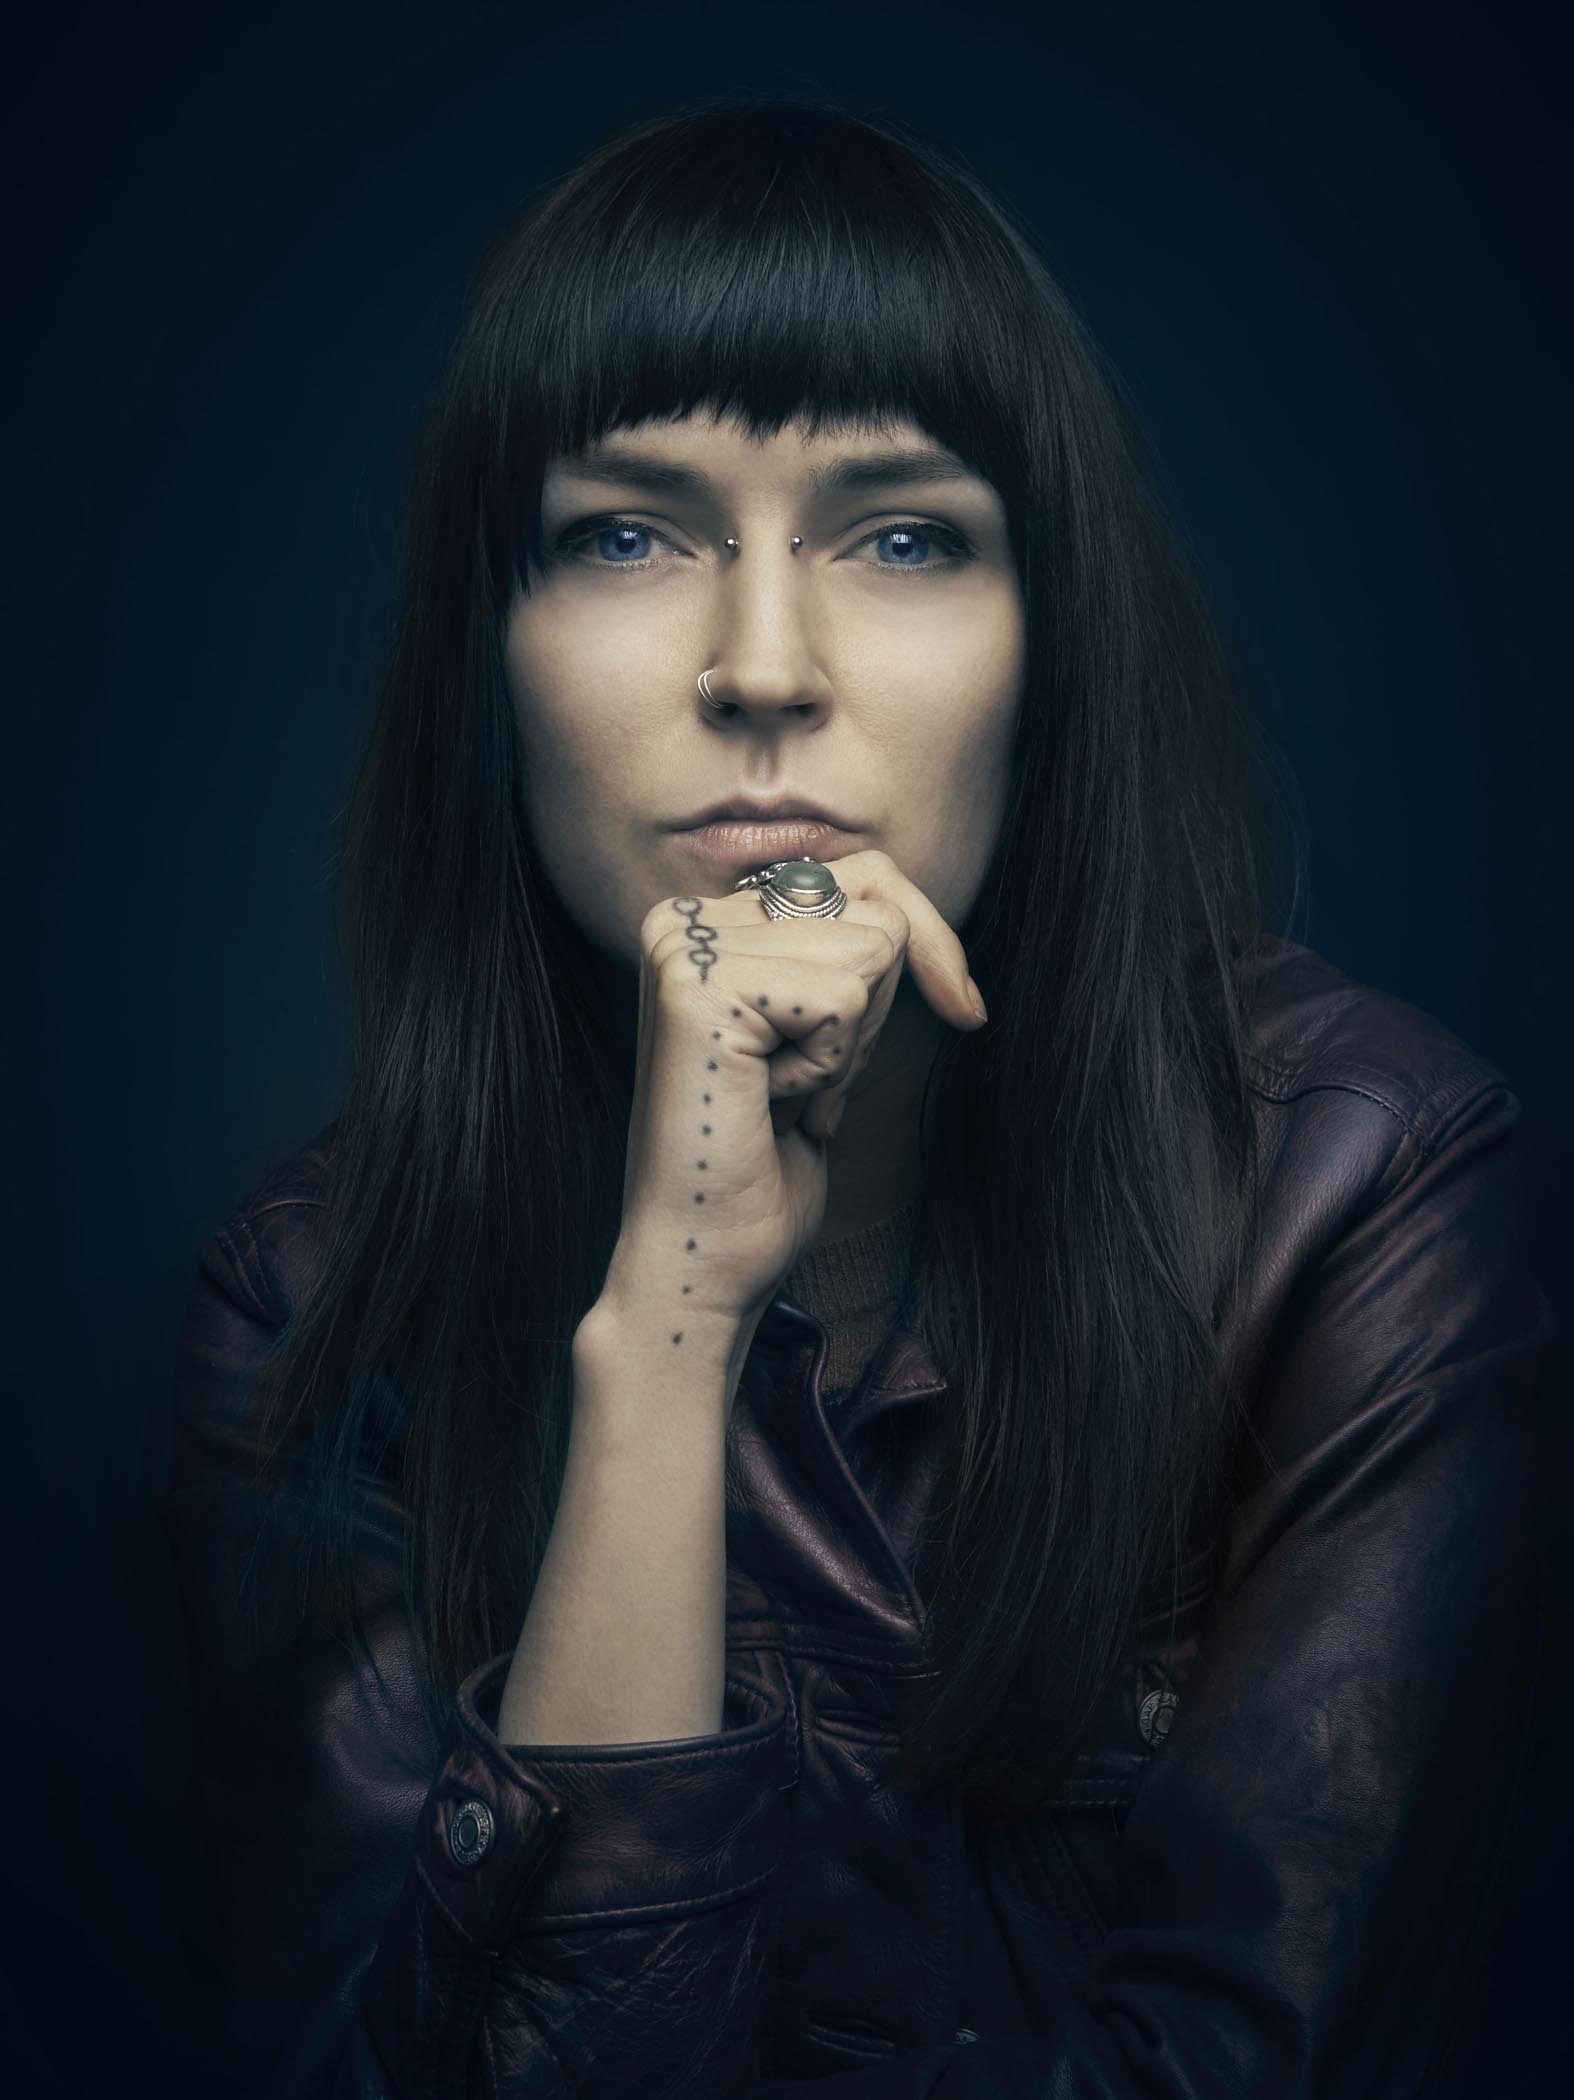 Portrait of a woman wearing leather with hand on chin